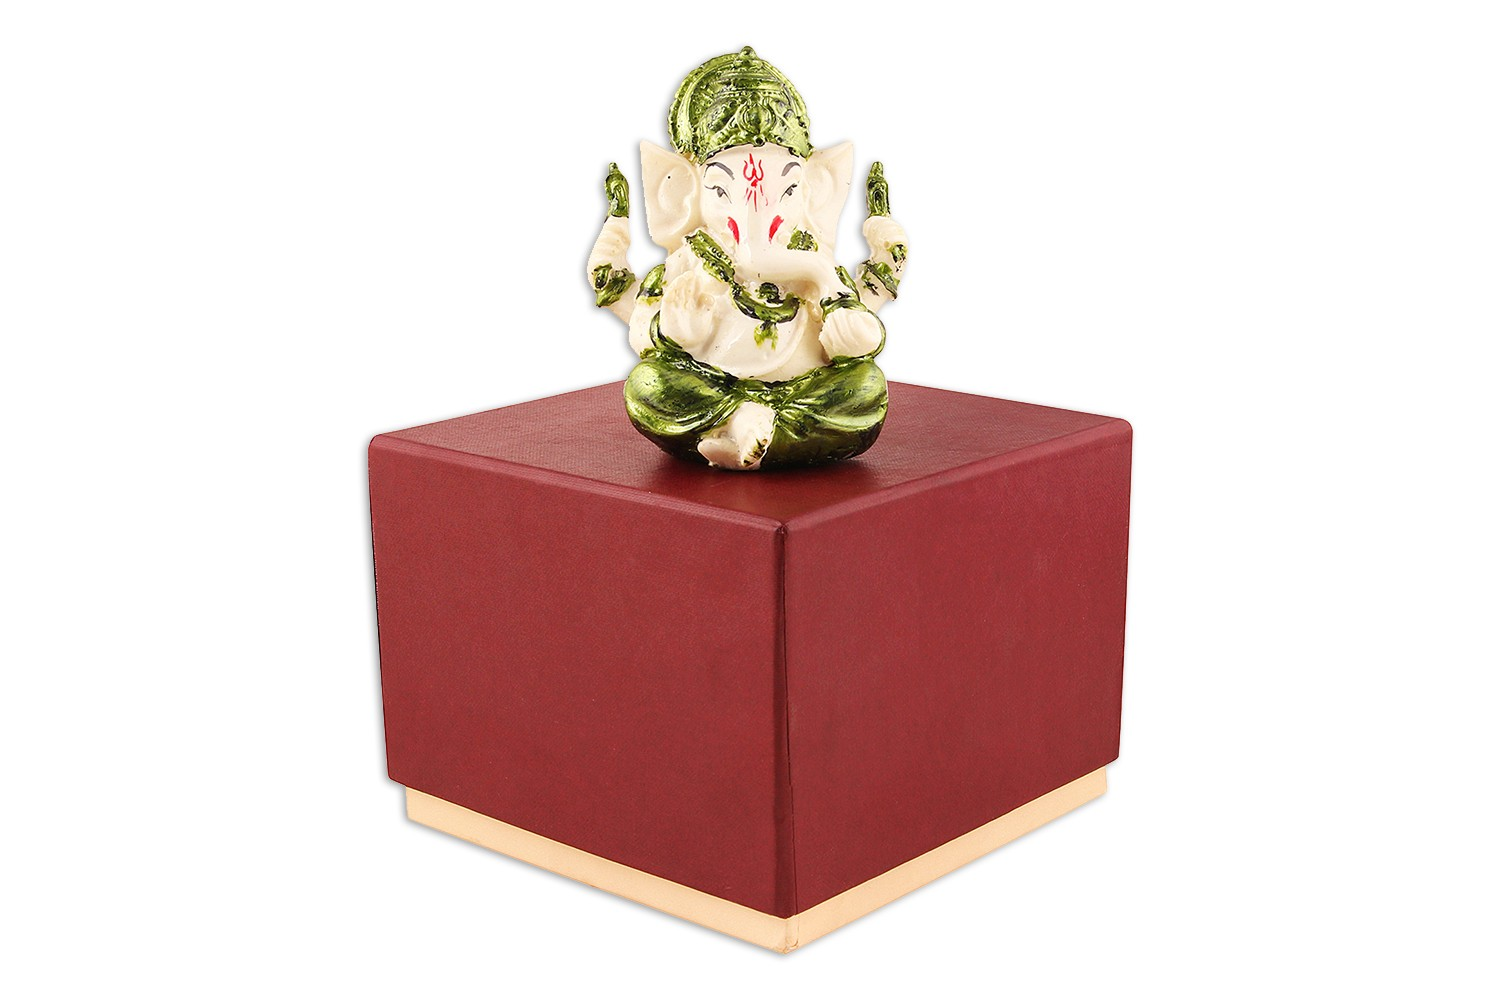 Lord Ganesha Sculpture - 4 Inches